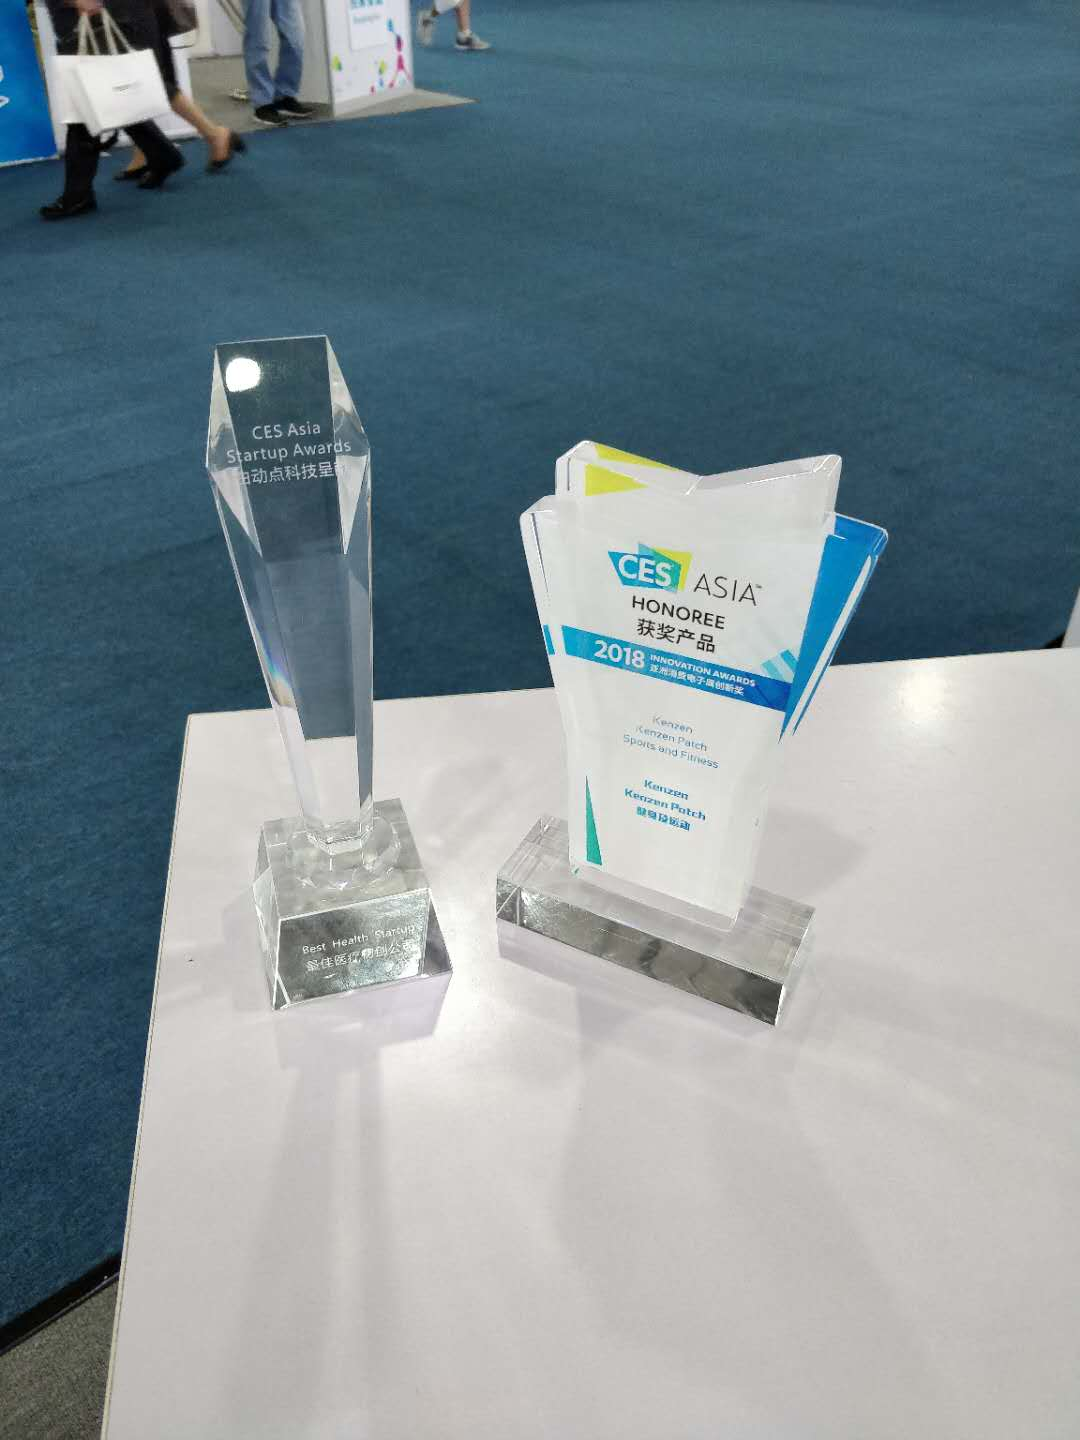 Kenzen: Best Health Startup and Innovation Awards Honoree (Sports & Fitness Category).